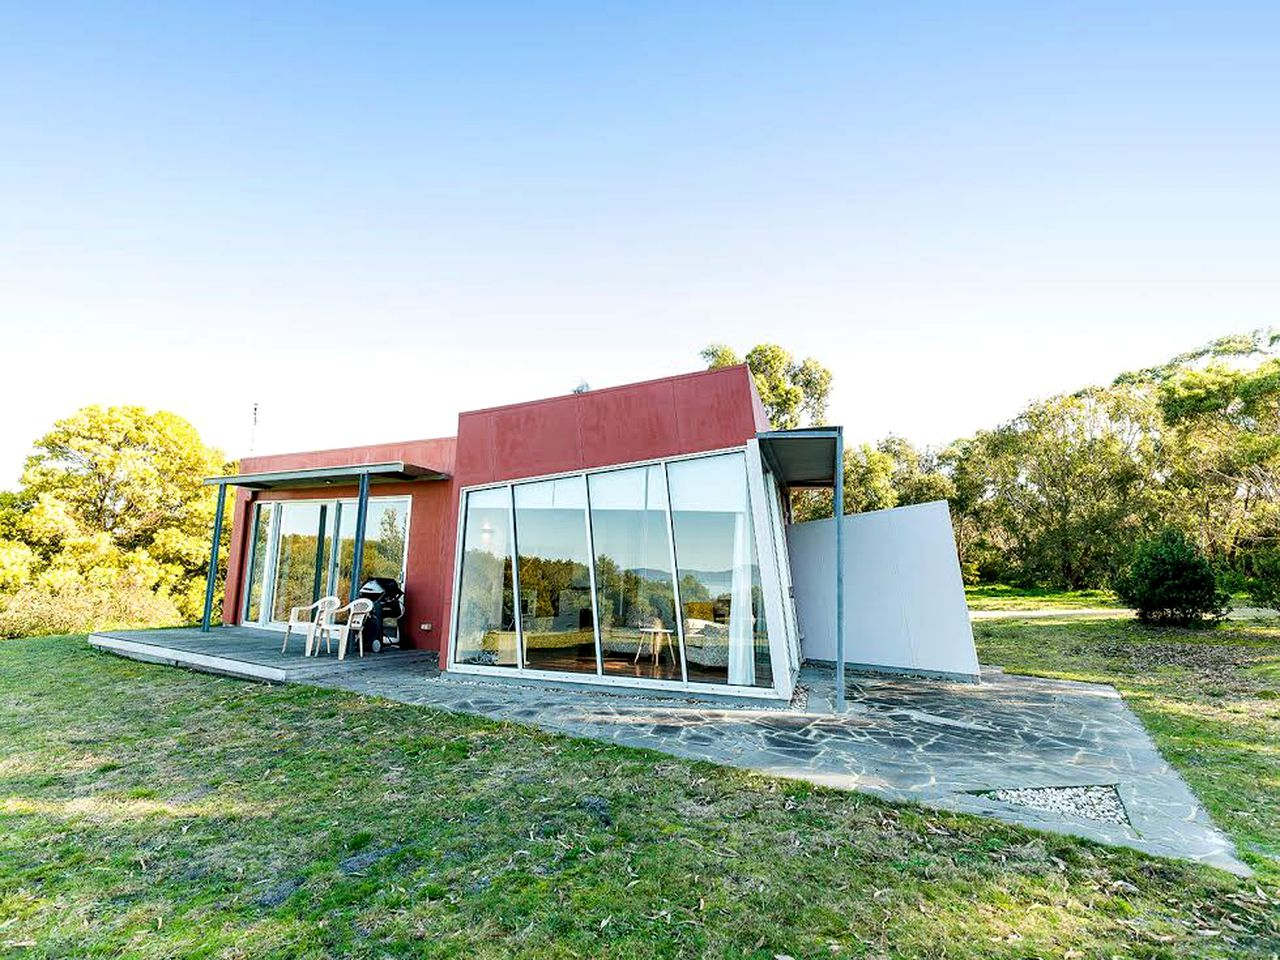 This uniquely designed villa is perfect for a romantic getaway in Victoria near Wilsons Promontory. Accommodation doesn't get better than this!